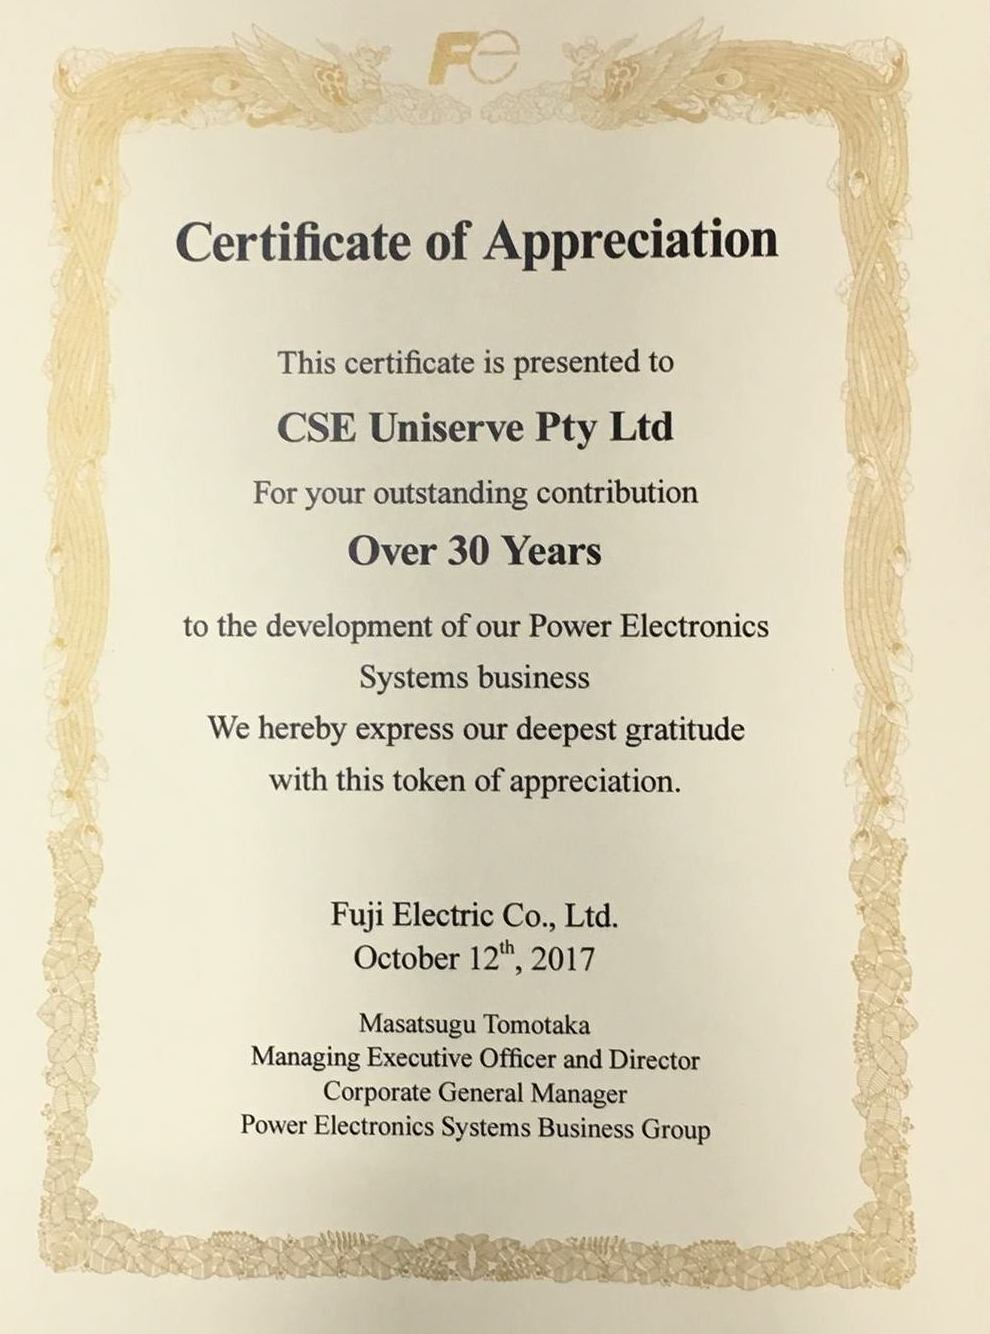 Fuji Electric – 30 Years of Business